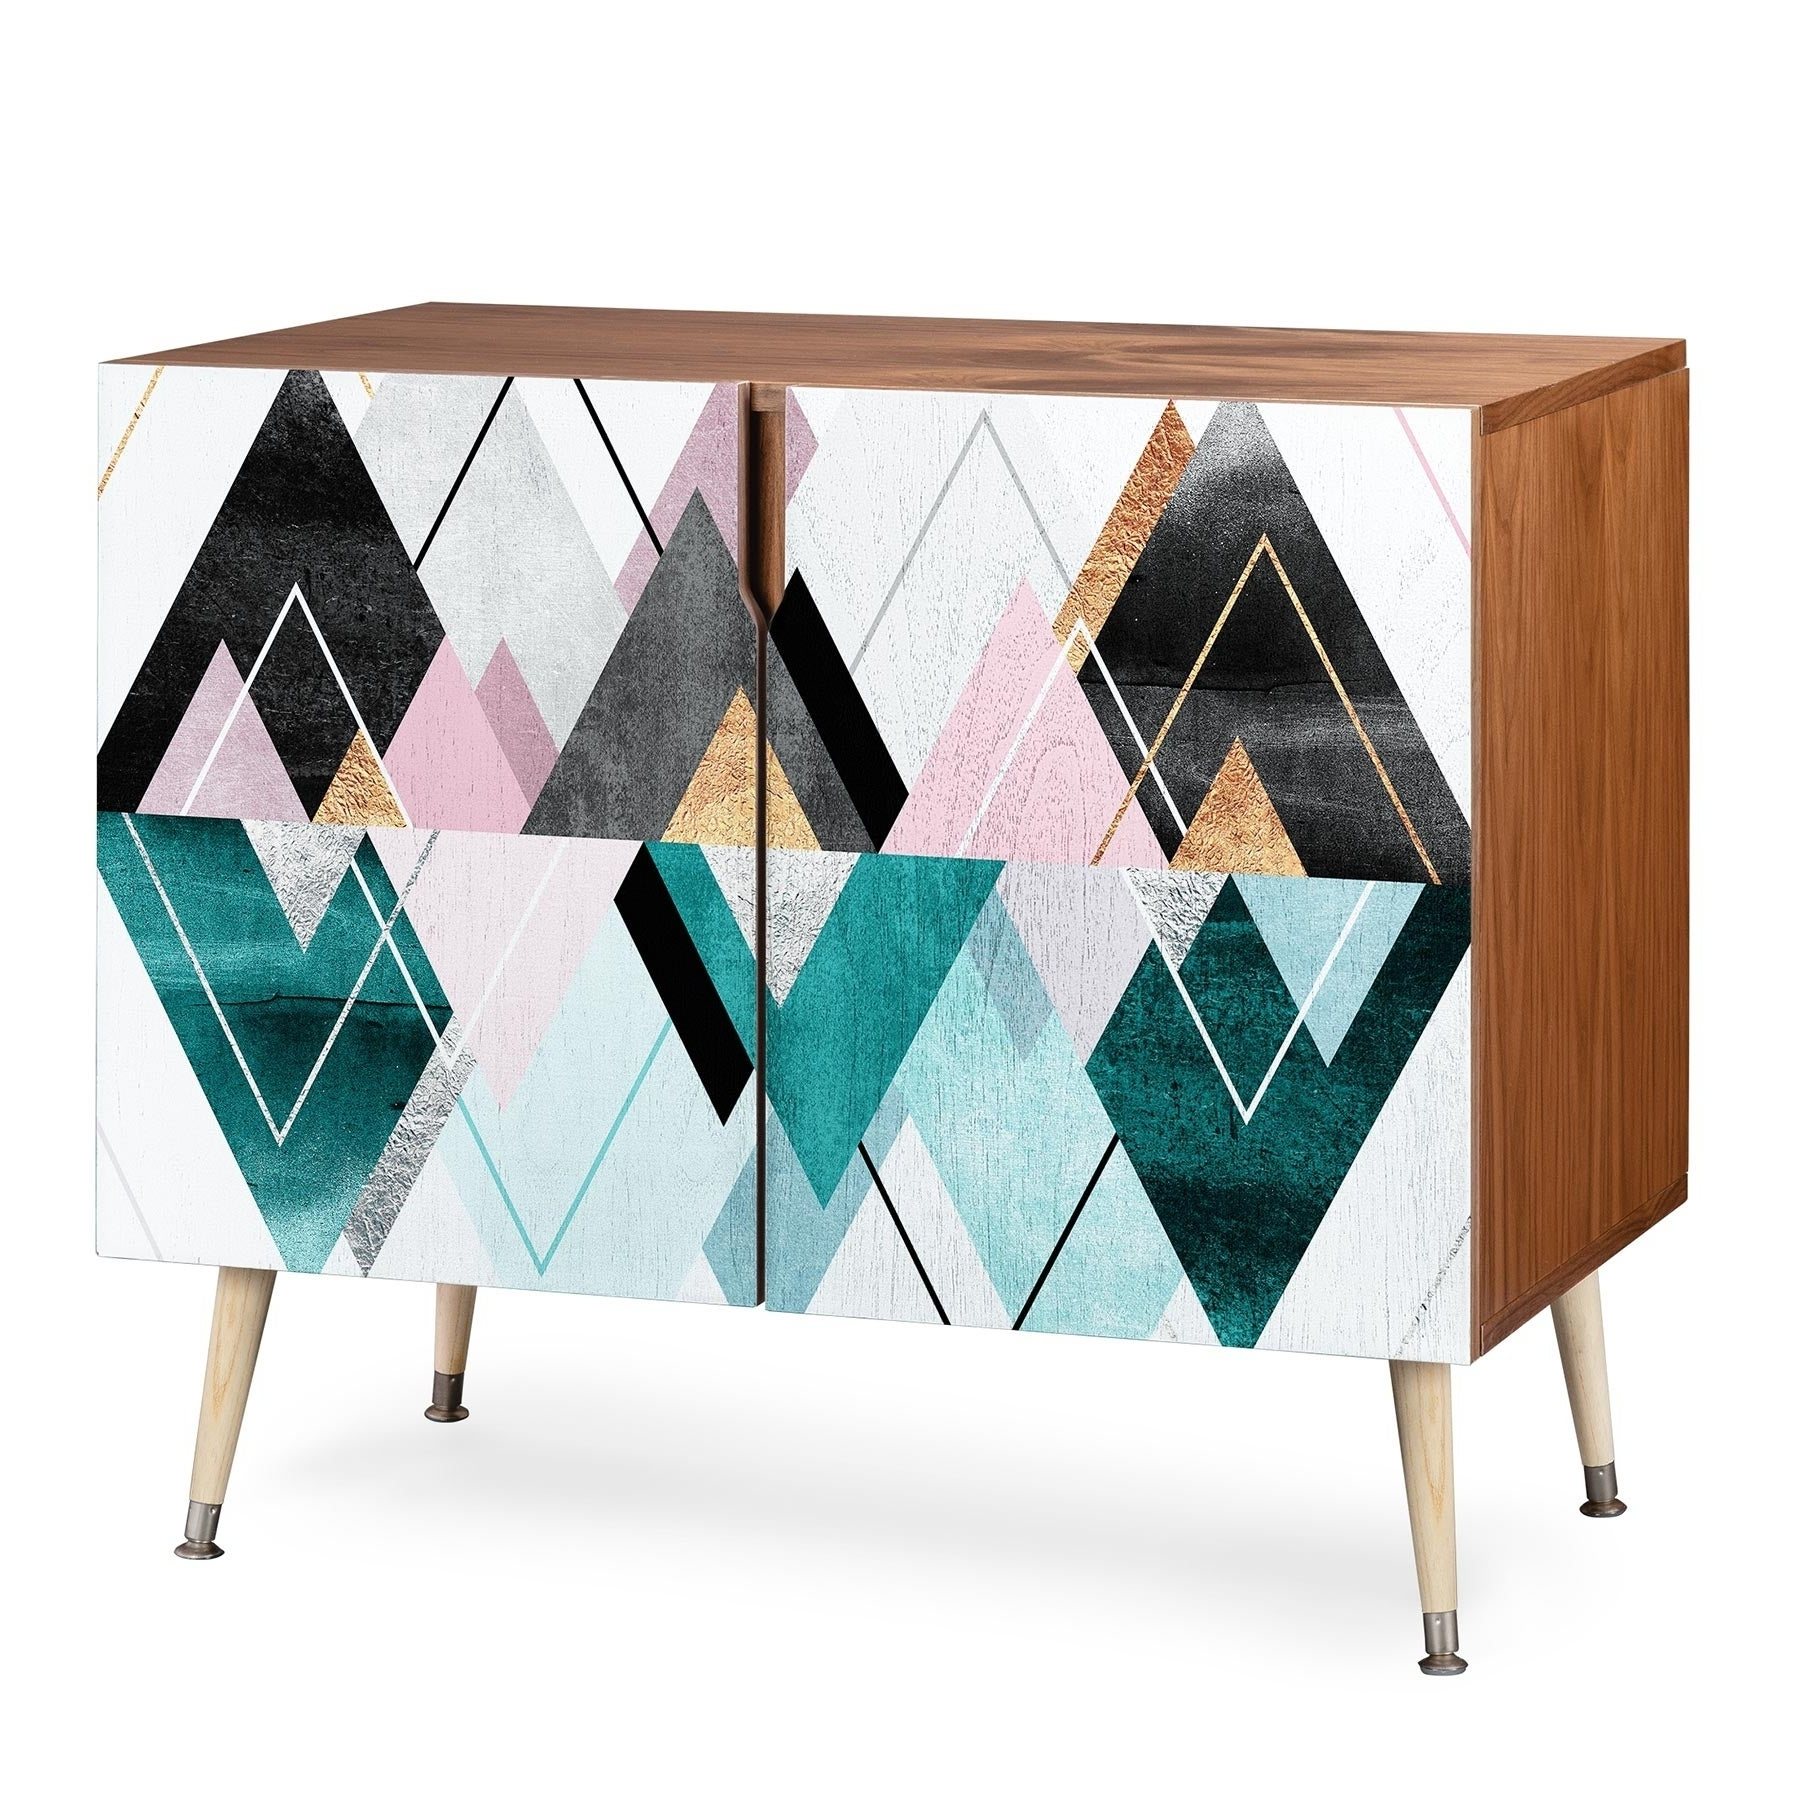 Deny Designs Geometric Triangles Credenza (Birch Or Walnut, 3 Leg Options) Within Modele 7 Geometric Credenzas (View 2 of 20)